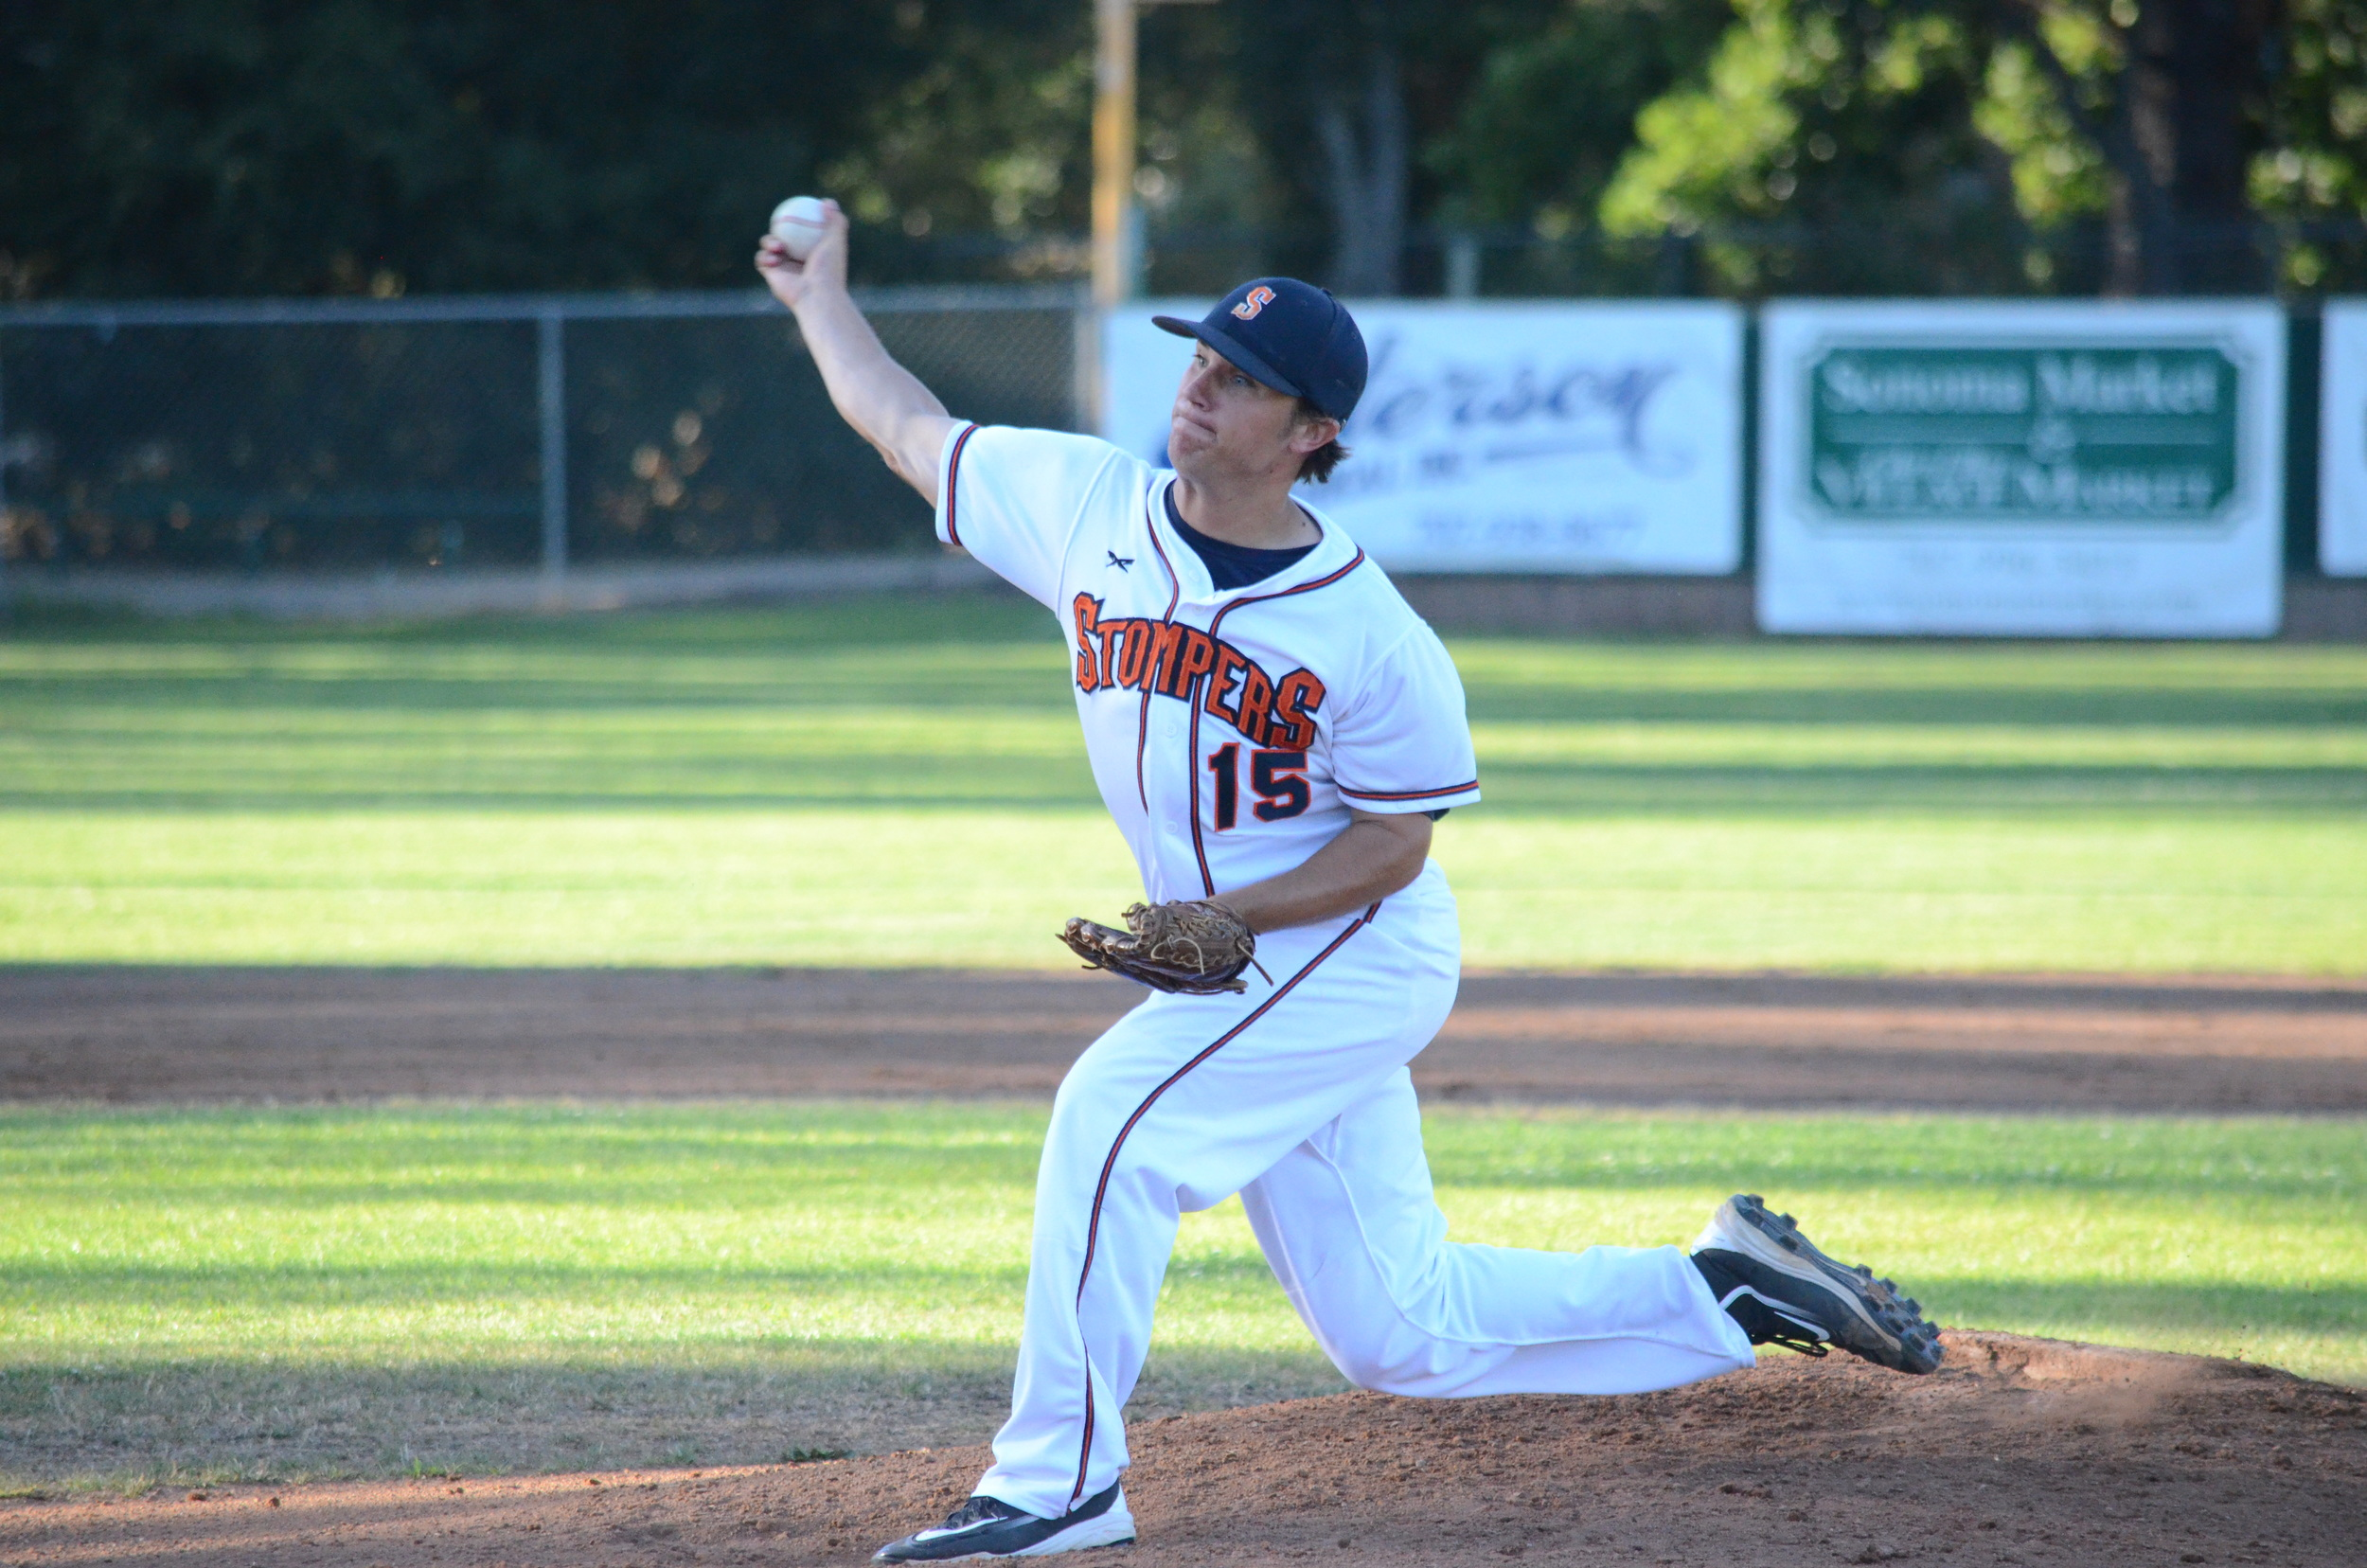 Taylor Thurber delivered with a fantastic start in a 6-2 win over the Diamonds Tuesday. Thurber struck out 8 in 8 innings of work to earn the win.   James Toy III/Sonoma Stompers